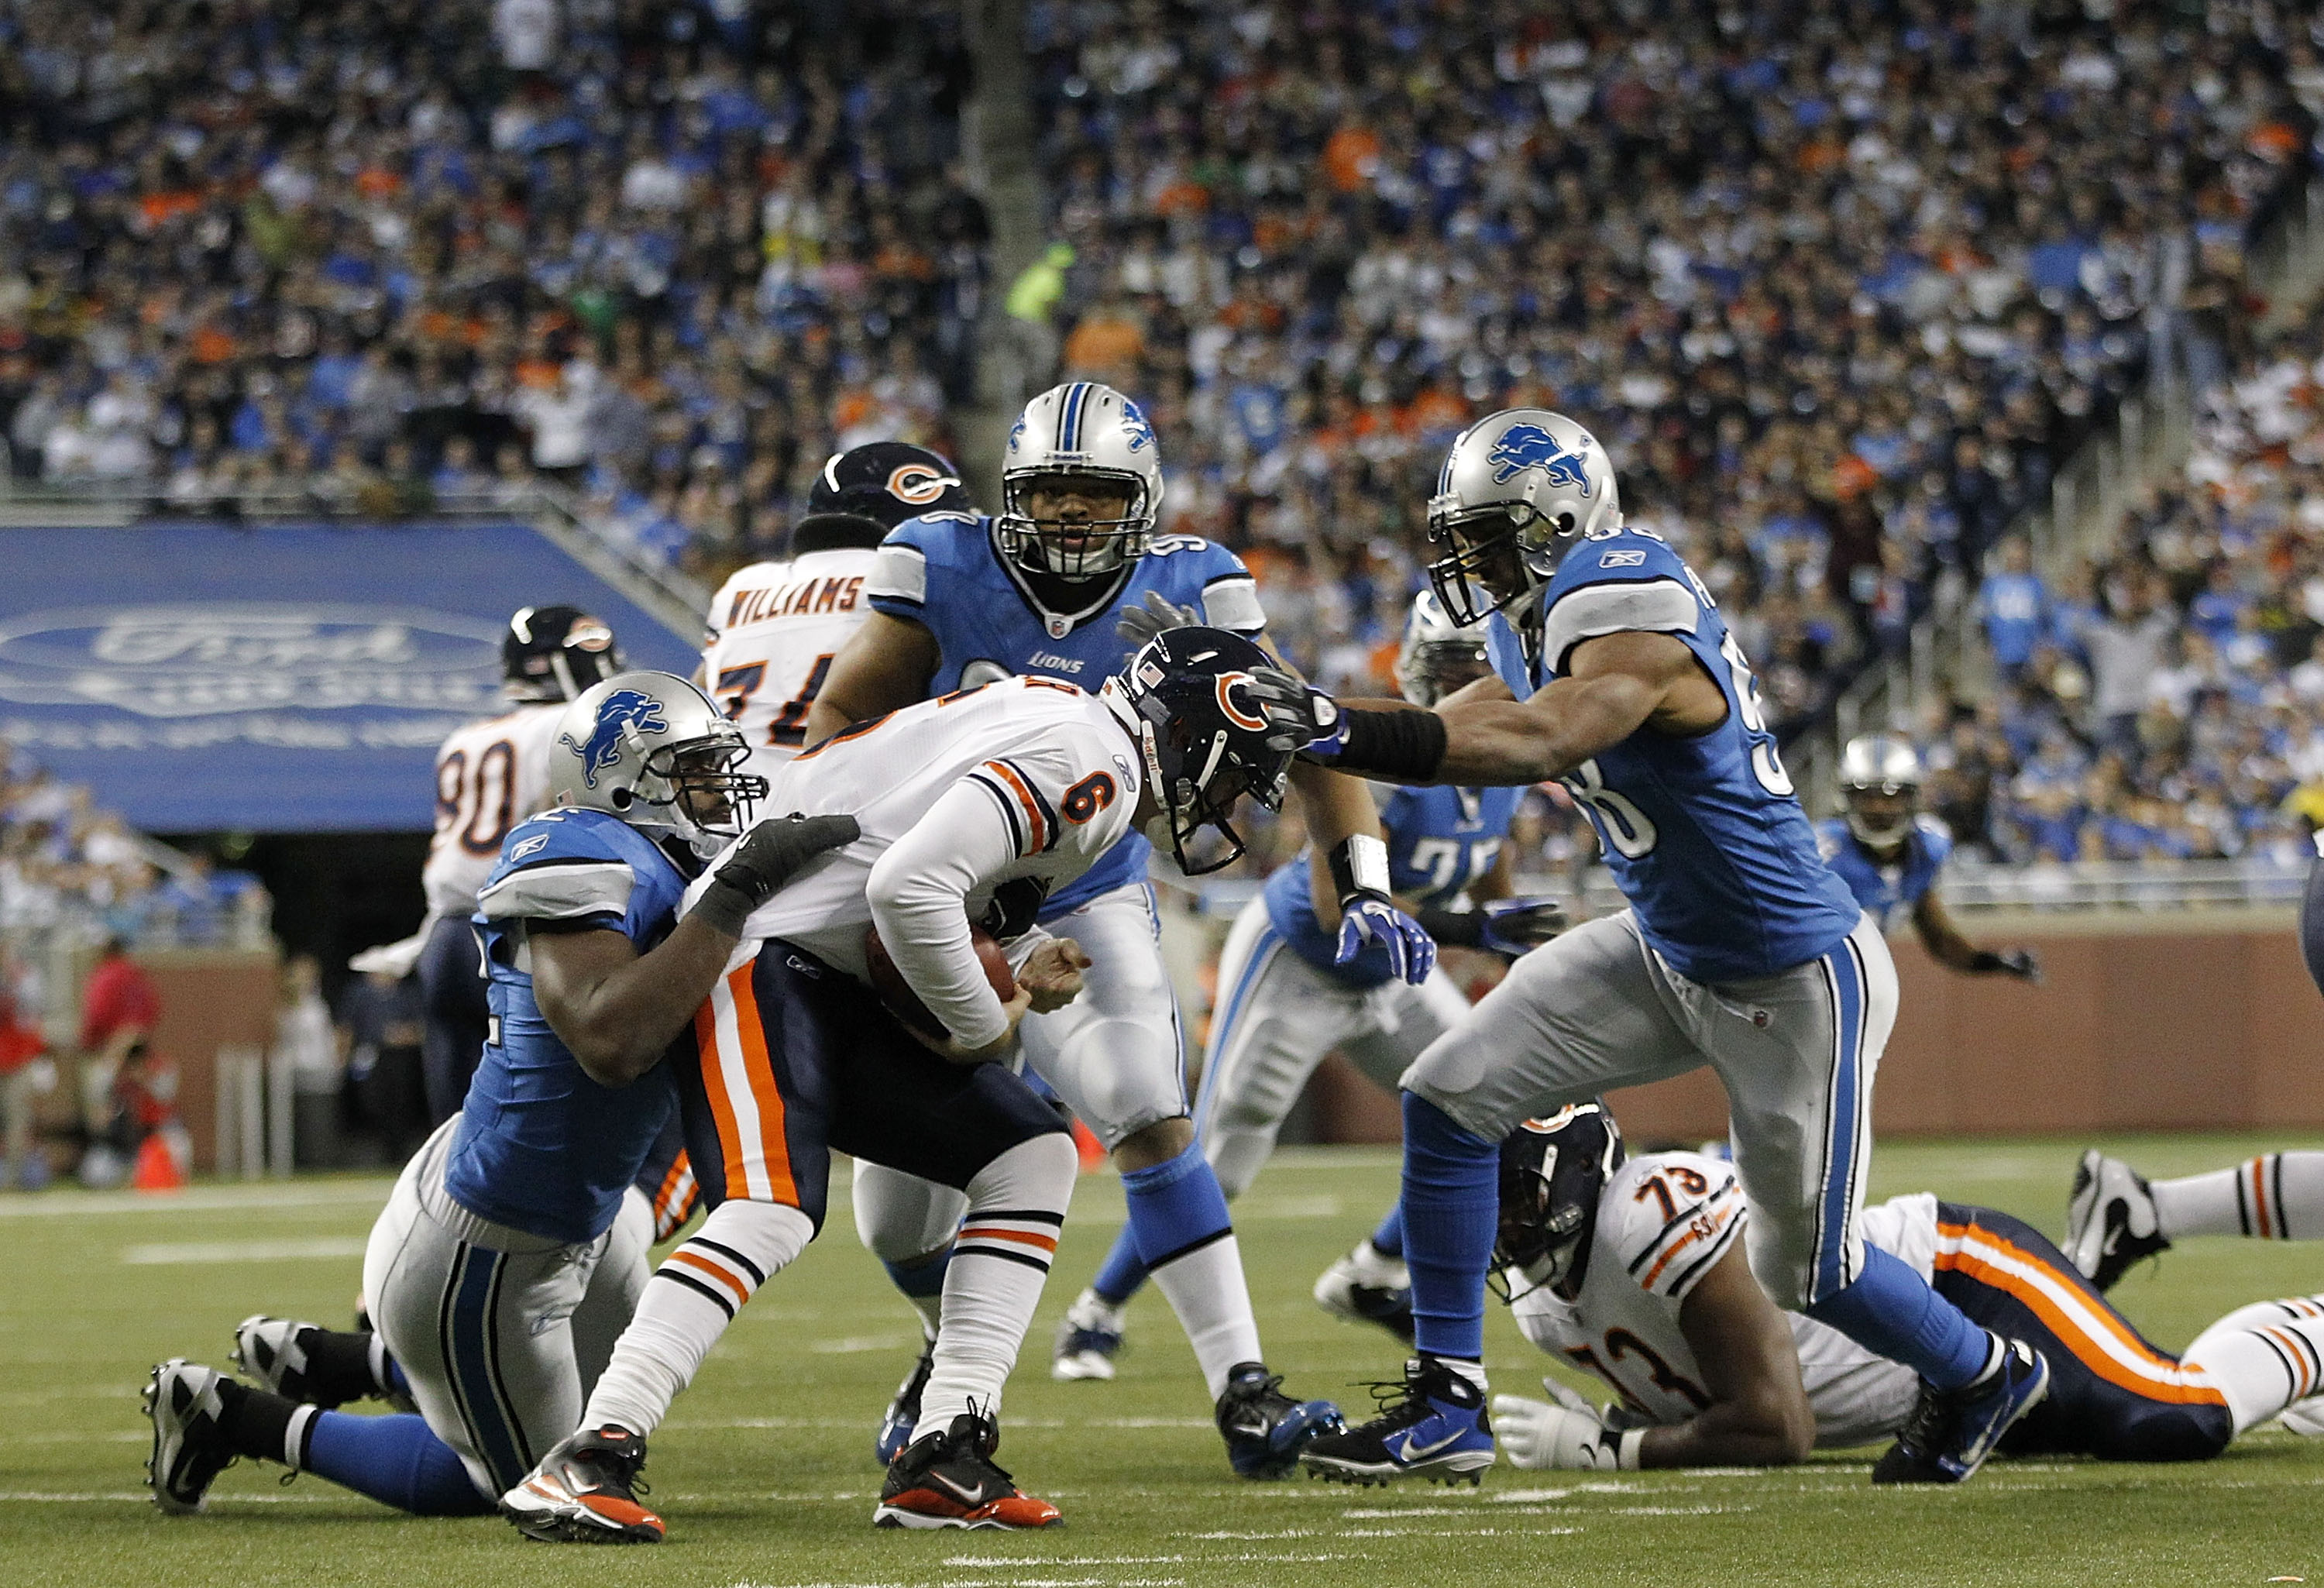 DETROIT - DECEMBER 05: Jay Cutler #6 of the Chicago Bears is sacked by Cliff Avril #92 and Julian Peterson #98 of the Detroit Lions as Ndamukong Suh #90 looks on during the game at Ford Field on December 5, 2010 in Detroit, Michigan. The Bears defeated th